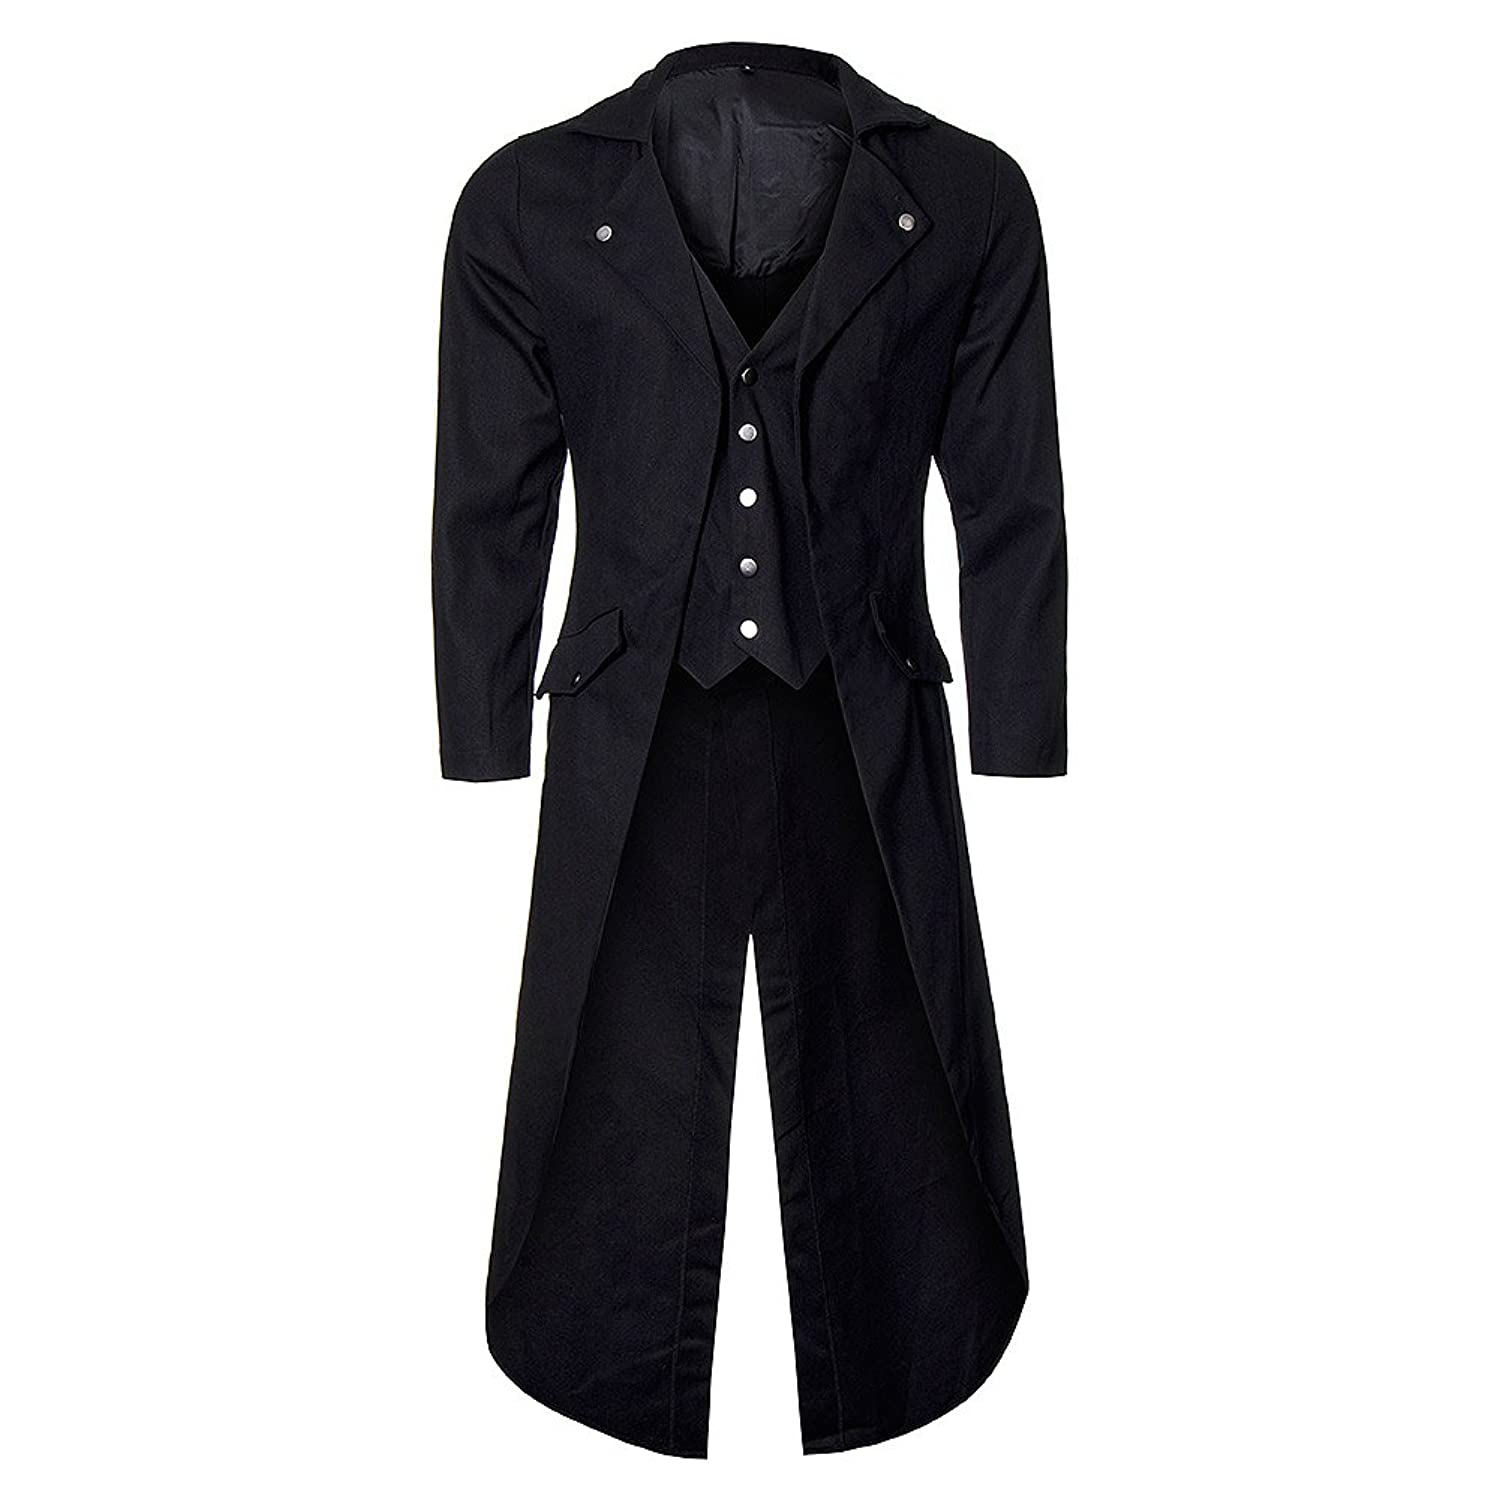 Victorian Mens Suits & Coats Banned Unisex-adults Frock Tail Coat $99.16 AT vintagedancer.com